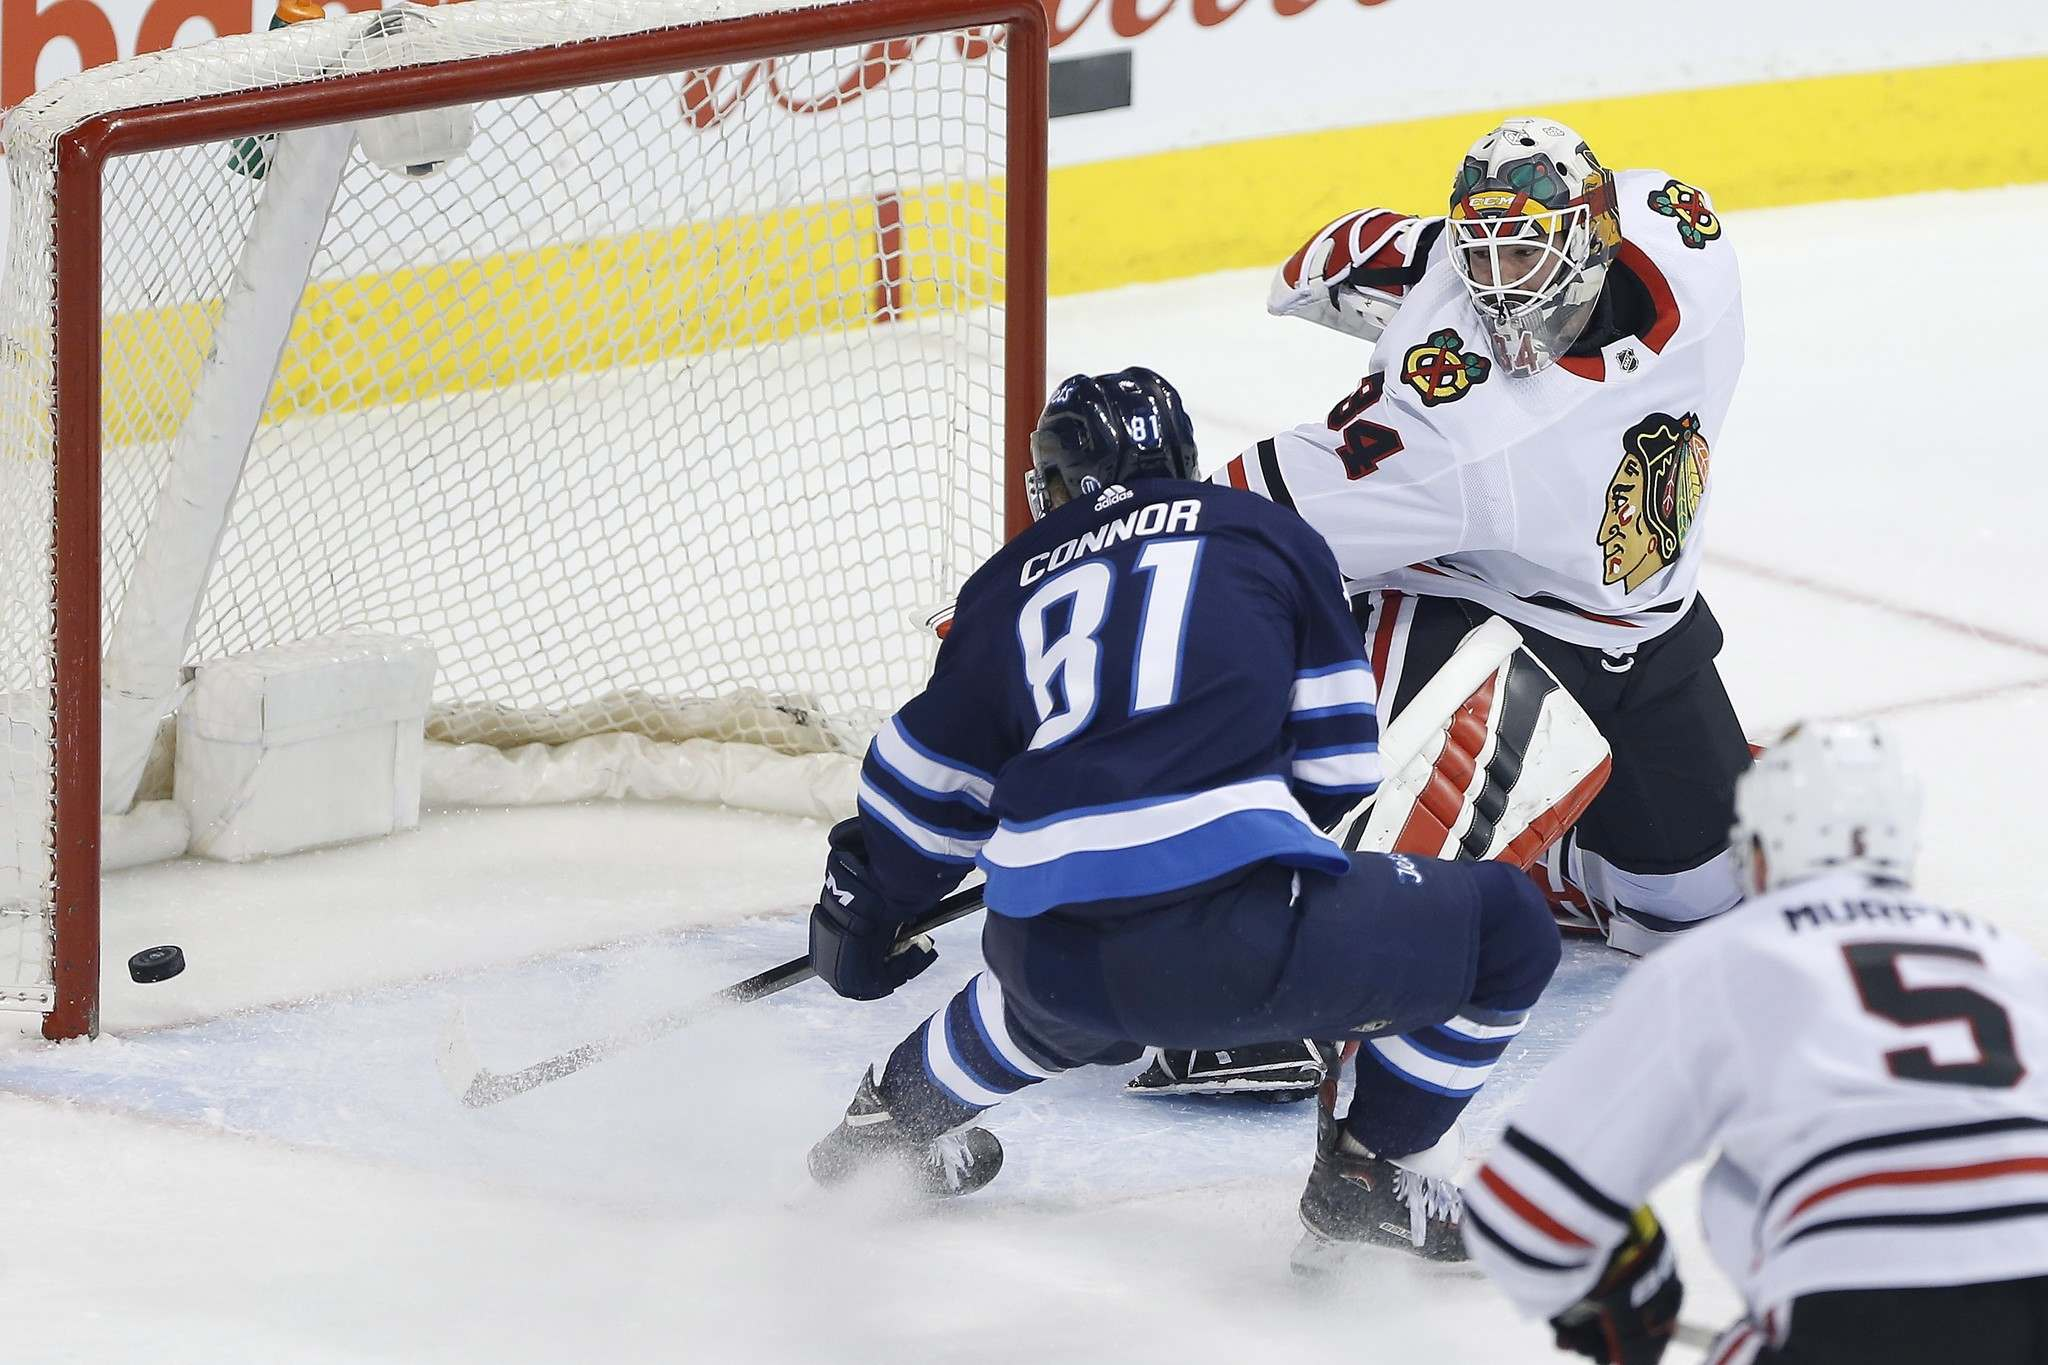 THE CANADIAN PRESS/John Woods</p><p>Winnipeg Jets left wing Kyle Connor scores his first of two goals on Chicago Blackhawks goaltender J-F Berube during first period, Thursday. Connor would later score an empty-net goal in the third period for his secong of the evening.</p>